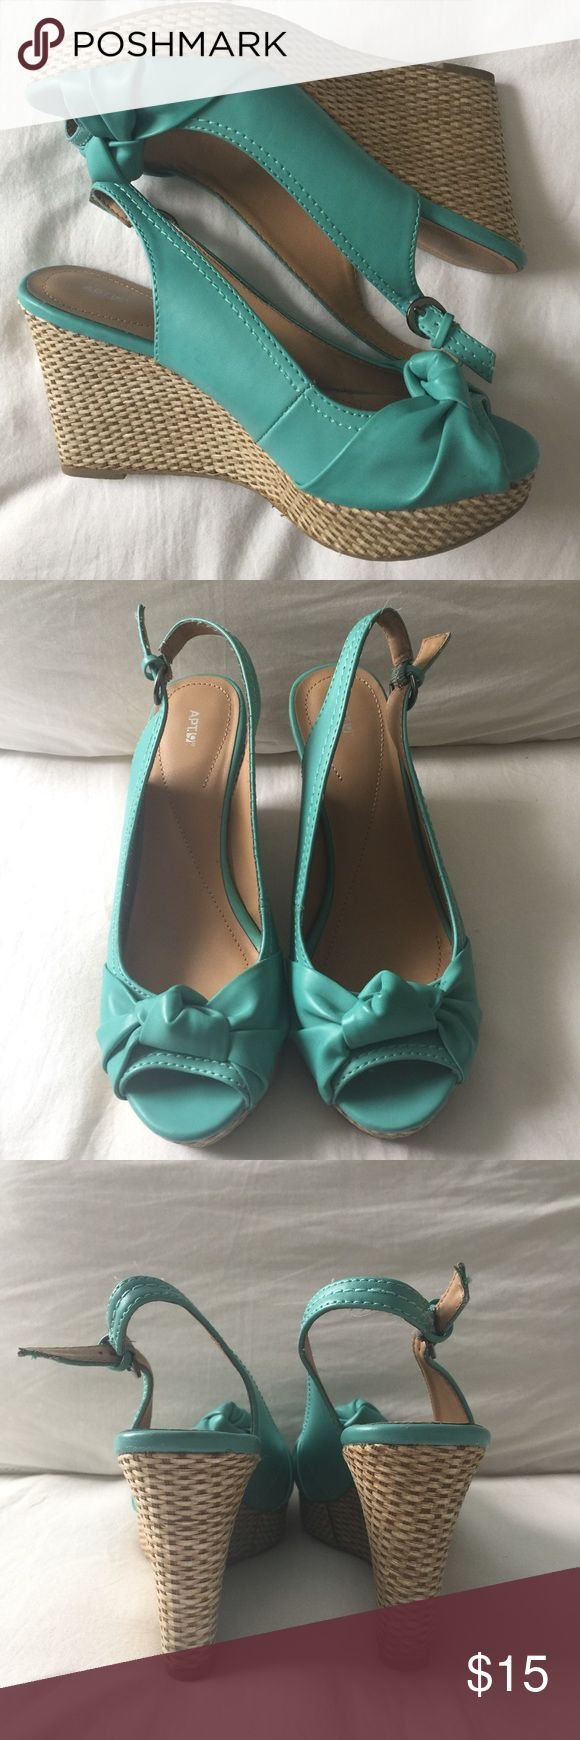 """Apt 9 Callista Wedges Only worn twice, in great condition. 4"""" heel, 1"""" platform. Open toe with heel strap. These teal wedges are comfortable and will give a great pop of color to any outfit! Perfect for summer. Offers will either be accepted or countered. Apt. 9 Shoes Wedges"""